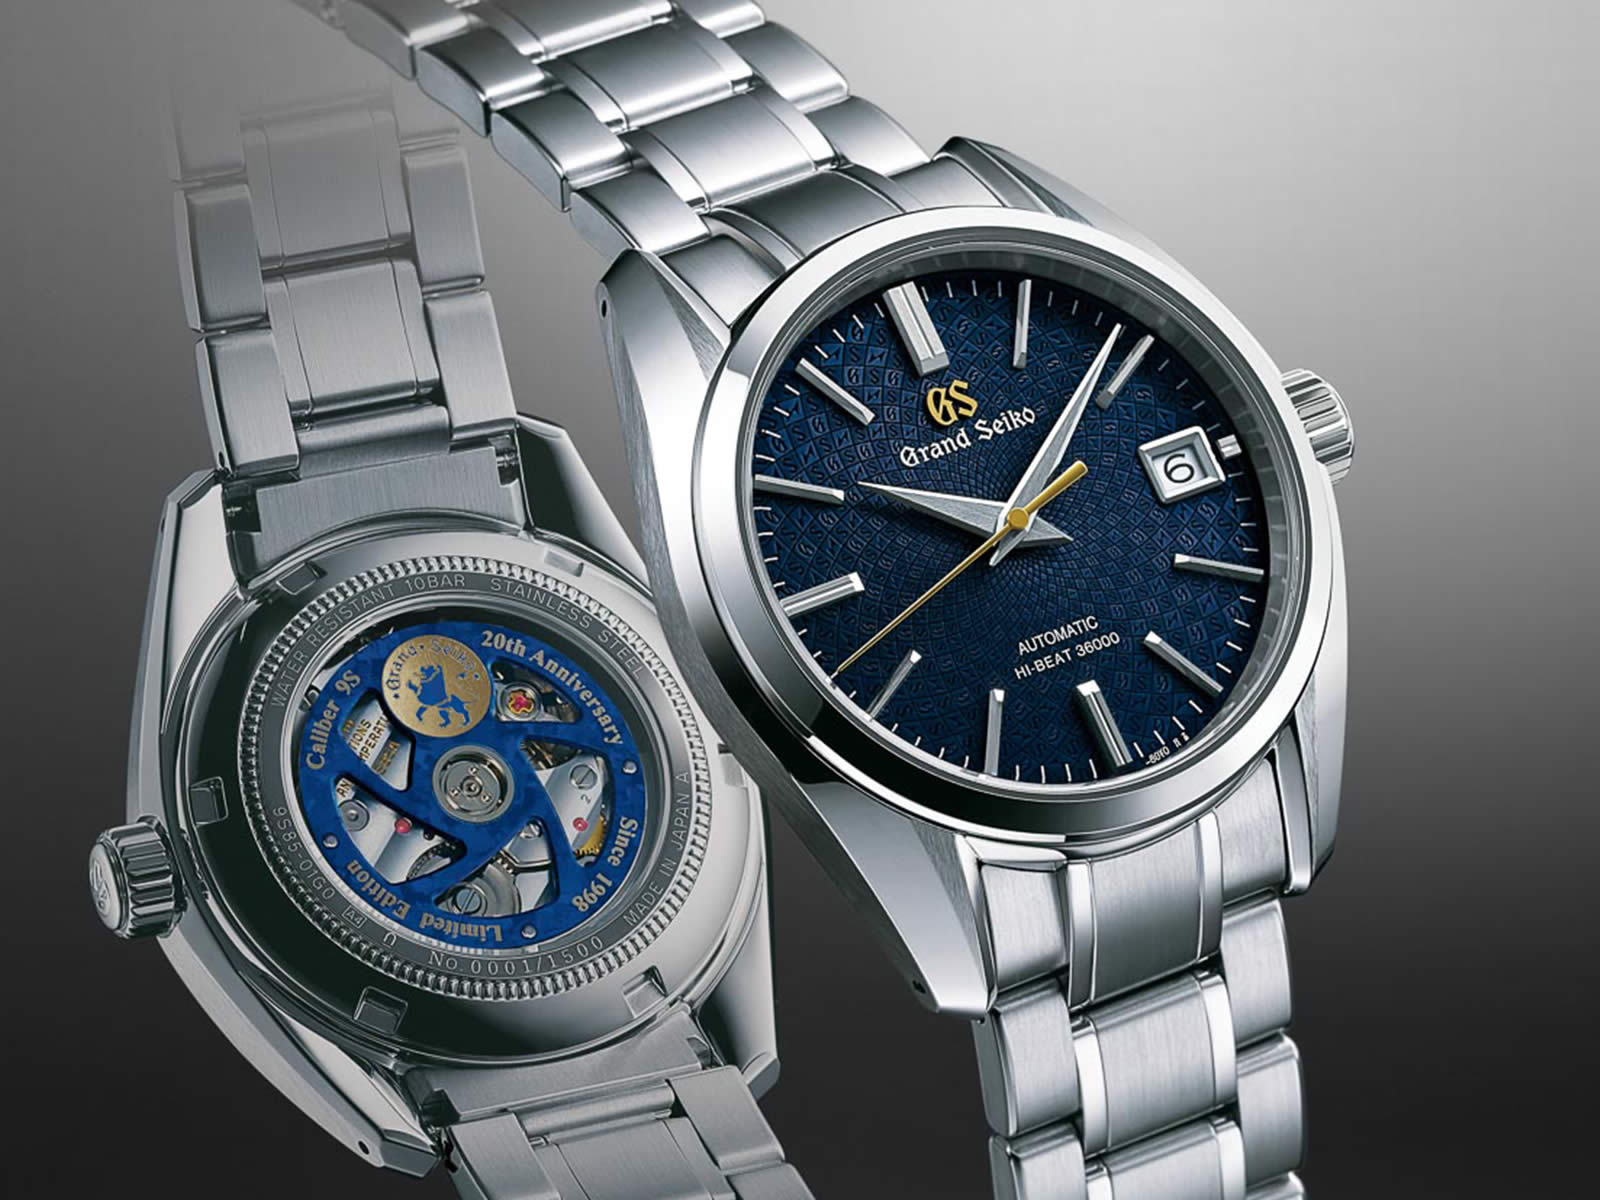 sbgh267-grand-seiko-hi-beat-36000-1-.jpg